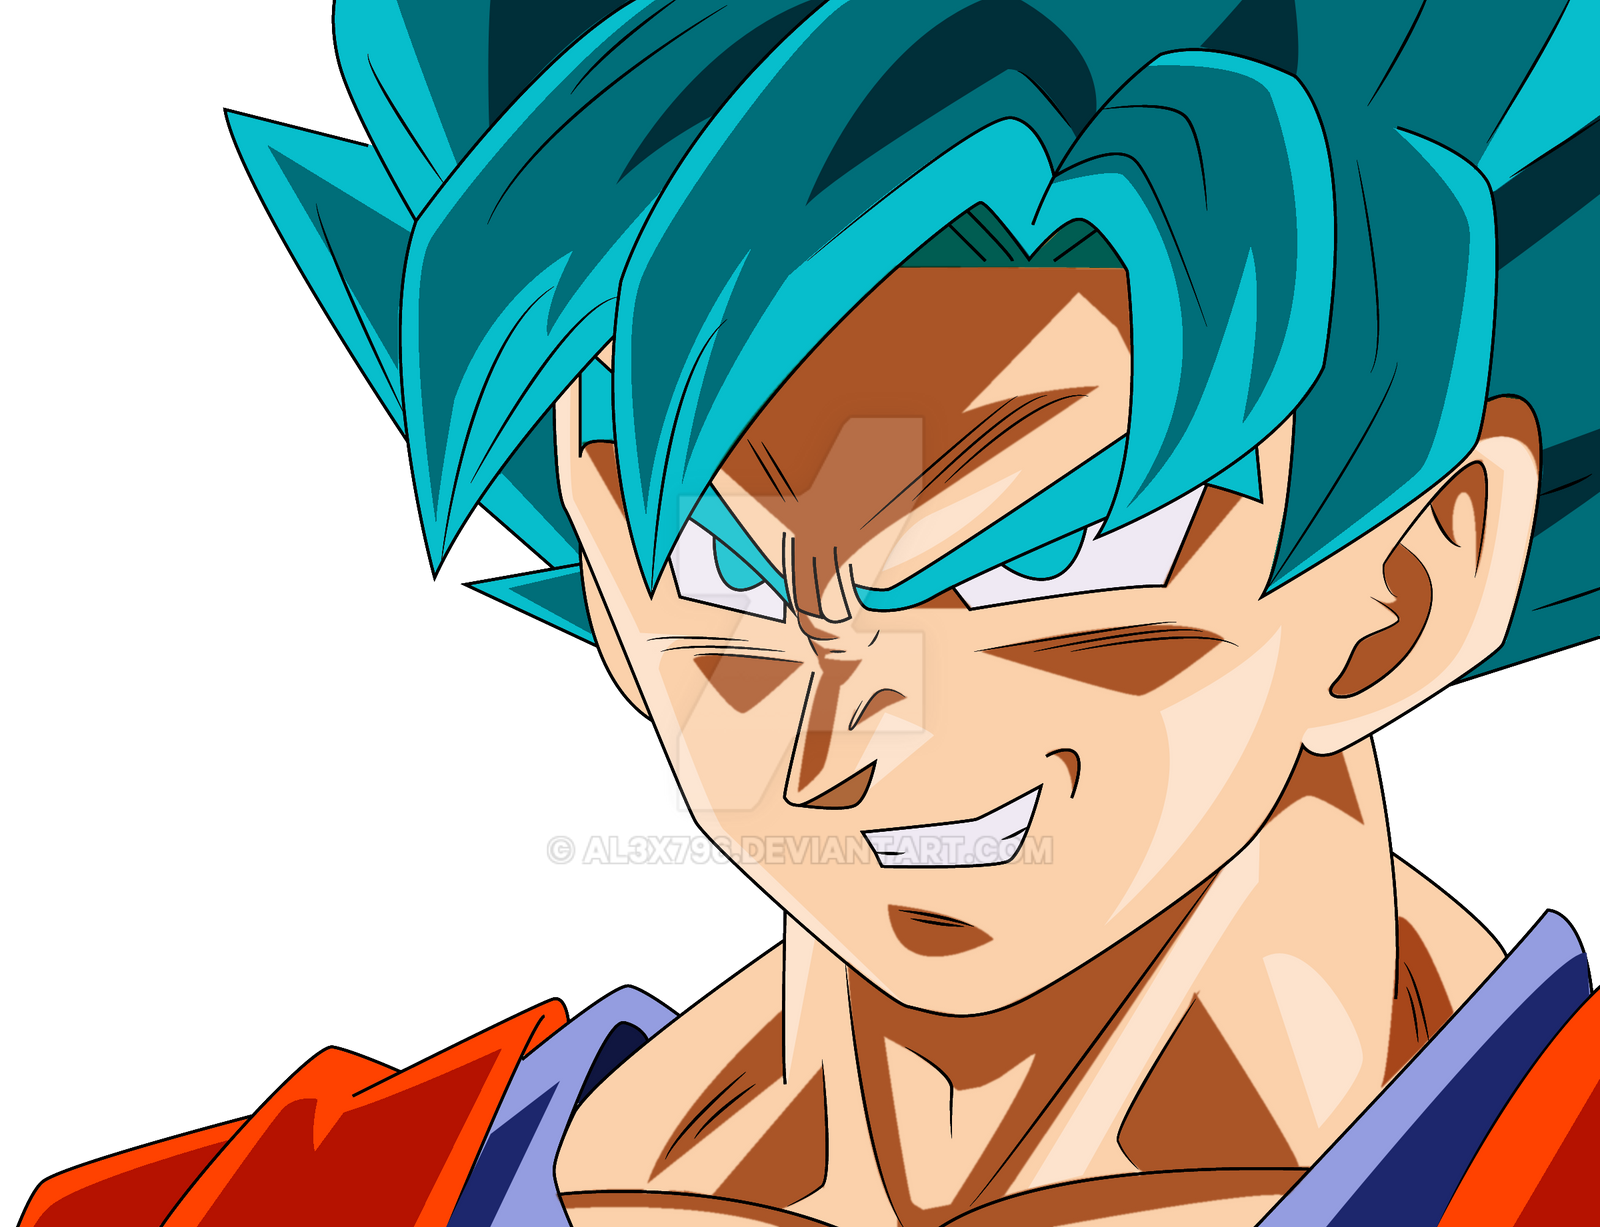 Goku Ssj Blue By AL3X796 On DeviantArt